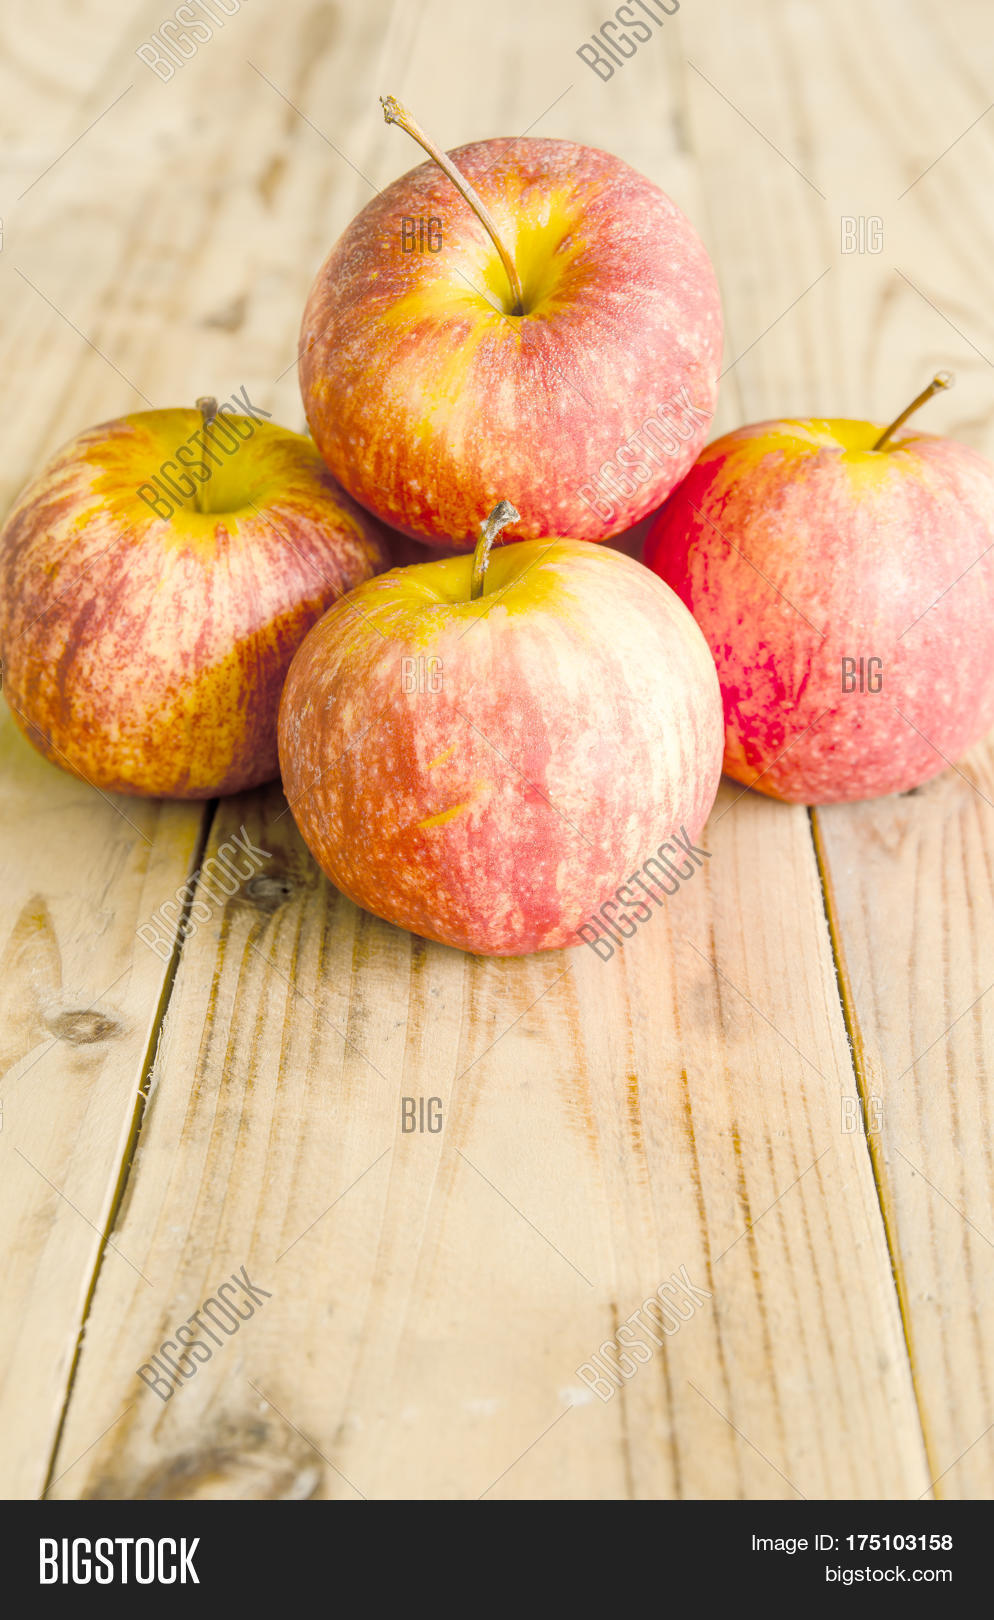 how to tell if gala apples are ripe